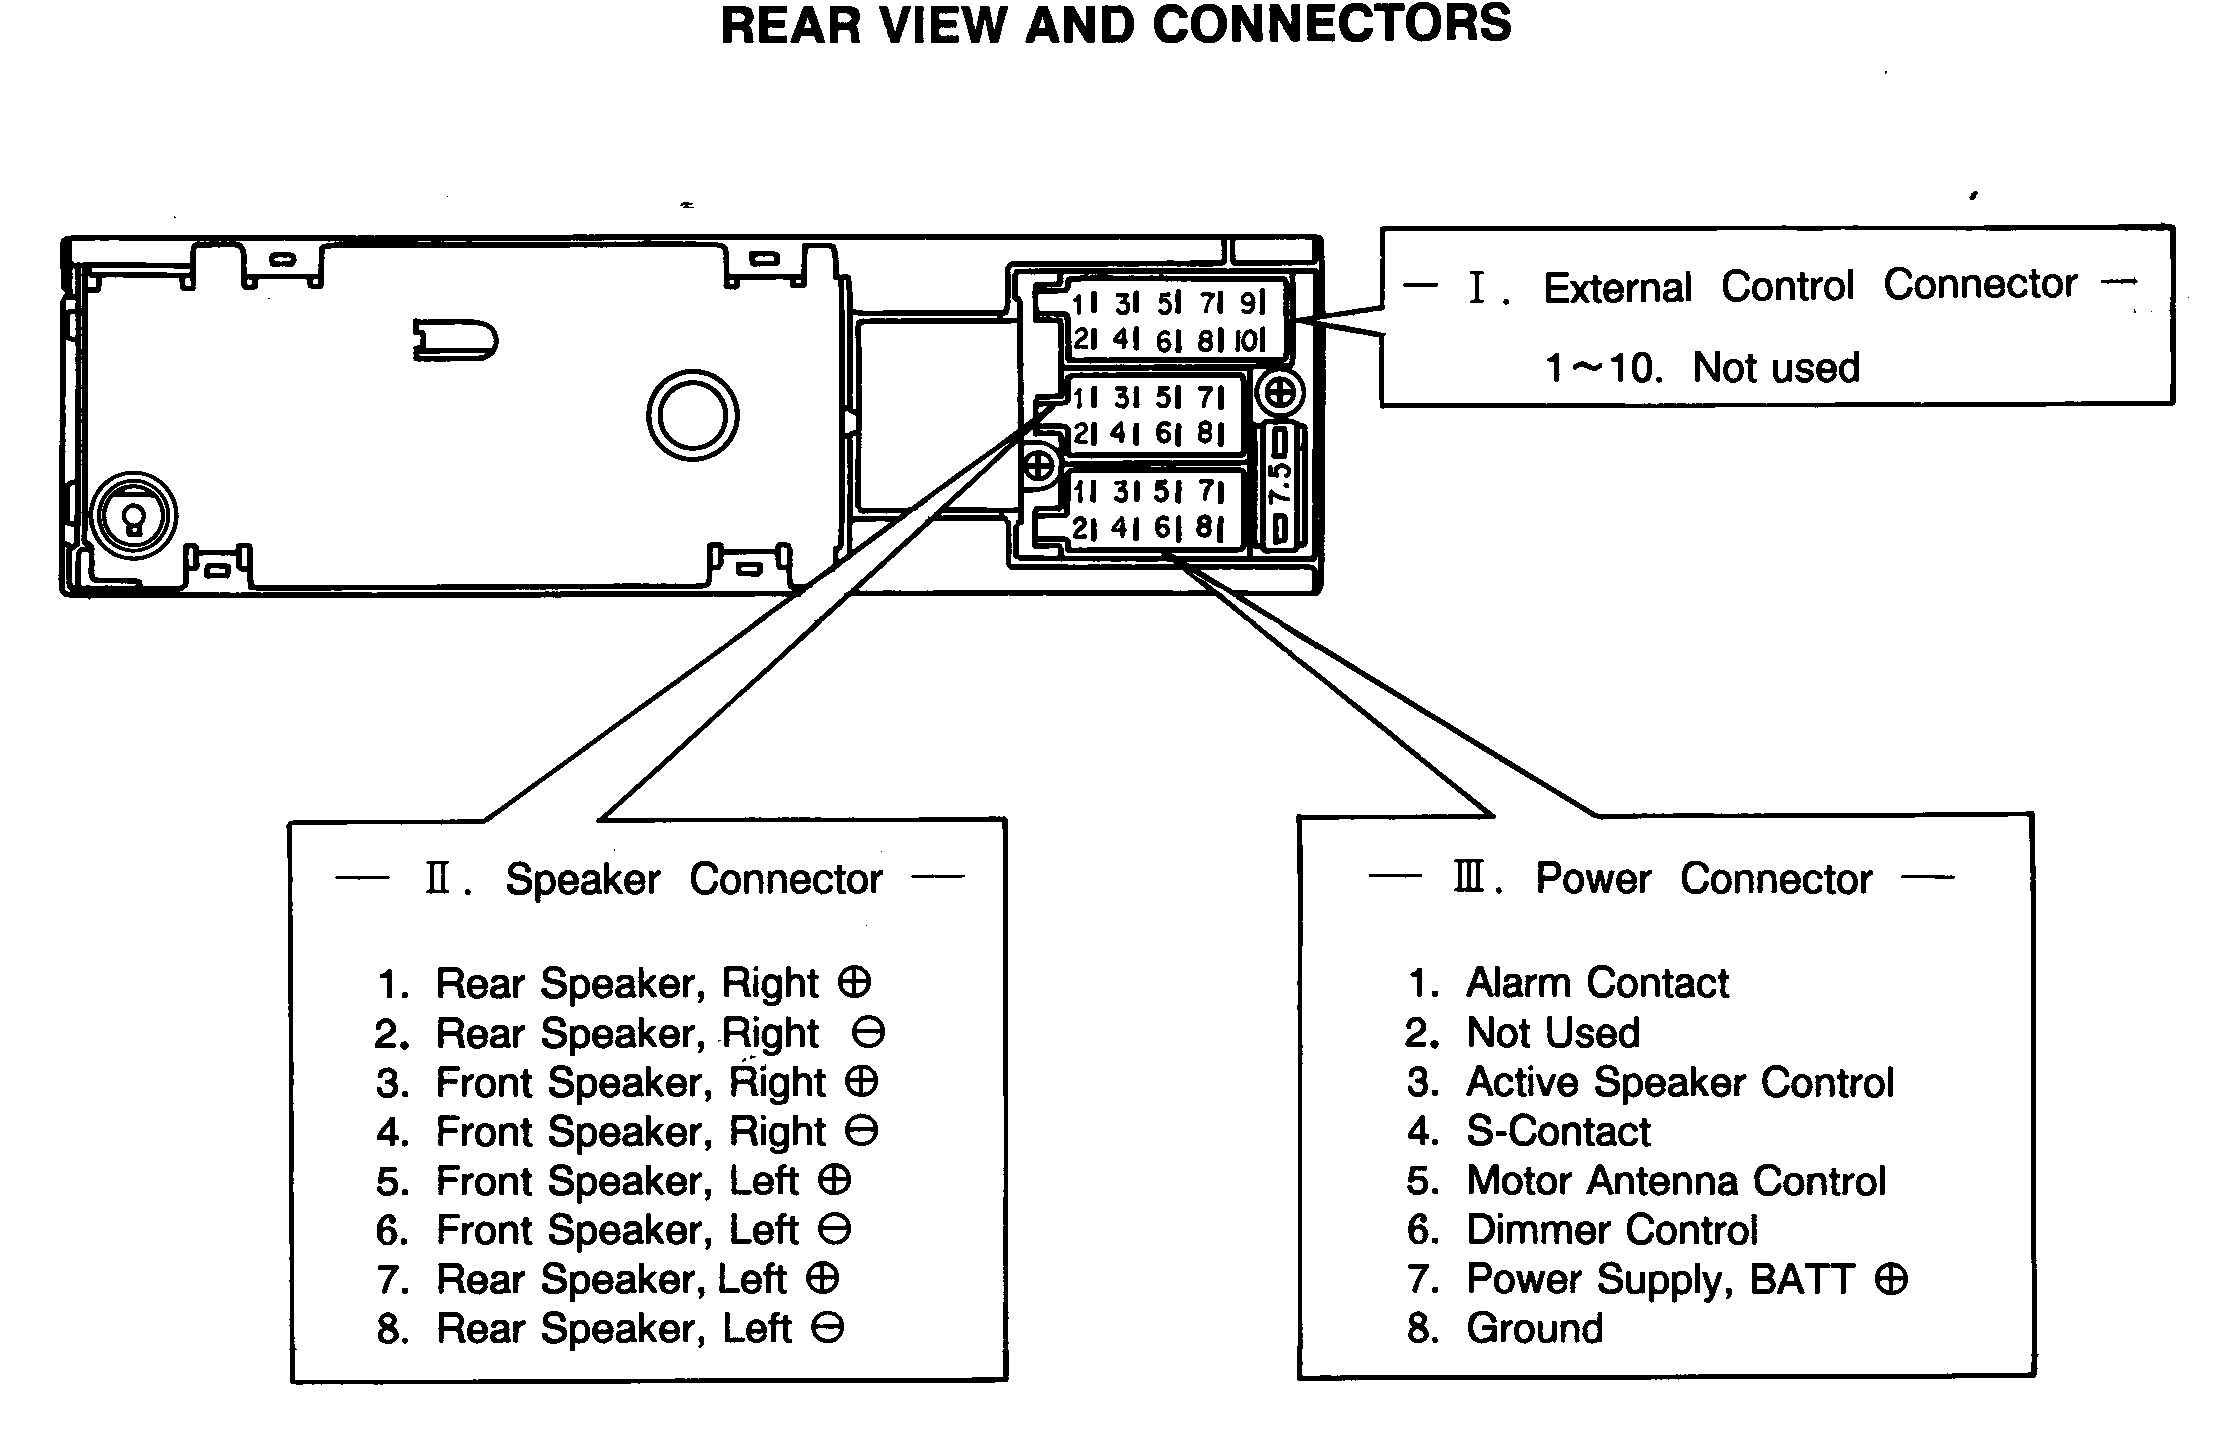 Wiring Diagram Car Audio Honda Stereo Wiring Diagram Blurts Of Wiring Diagram Car Audio